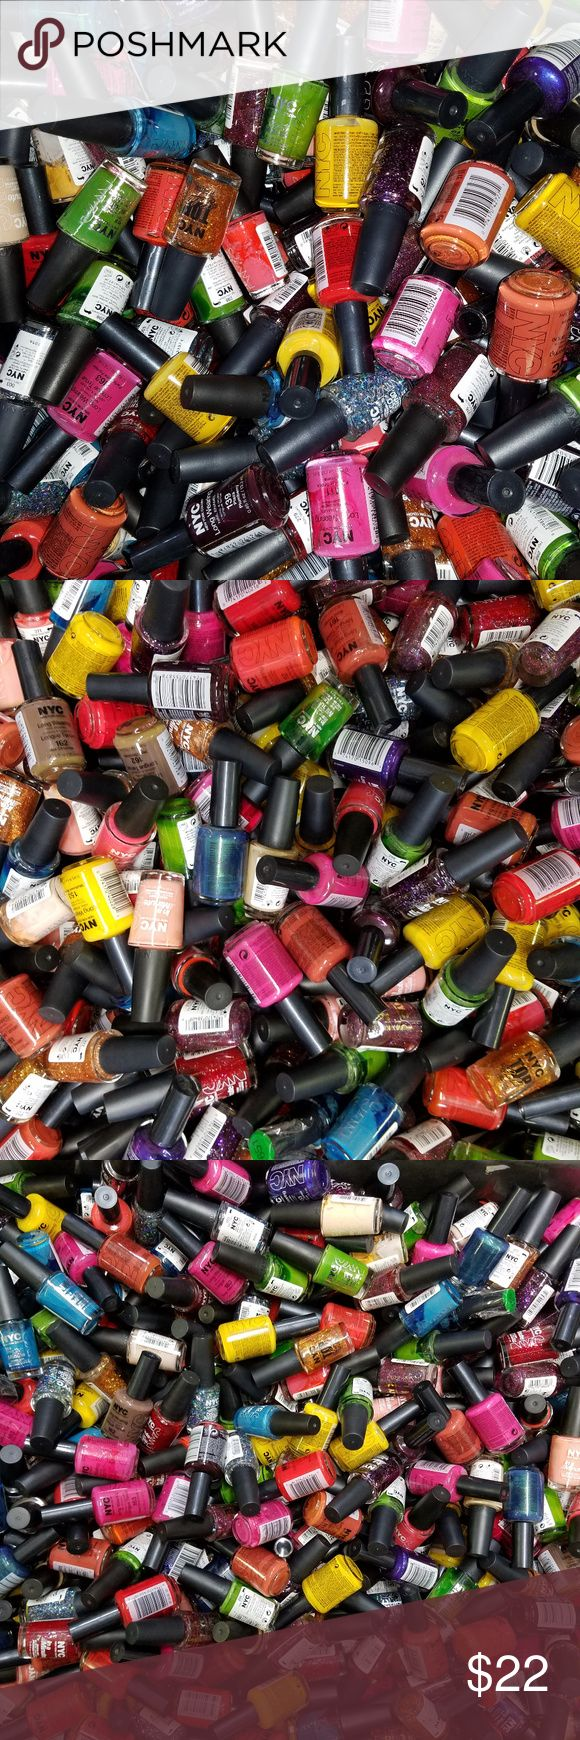 NYC New York Color Nail Polish Enamel Lot of 25 NYC (New York Color) Nail Polish Assorted Lot of 25 - BRAND NEW FRESH LOAD JUST IN! Two different types included: - NYC Long Wearing Nail Enamel .45 oz. each - NYC In a Minute Quick Dry Nail Polish and Top Coats .33 oz. each  Lot will include at least 18 different colors, a few colors will repeat, but not many!  Lot of 25 New Polishes (Model Photos).  Colors included in each lot may slightly vary. Great nail polish collection for personal use…